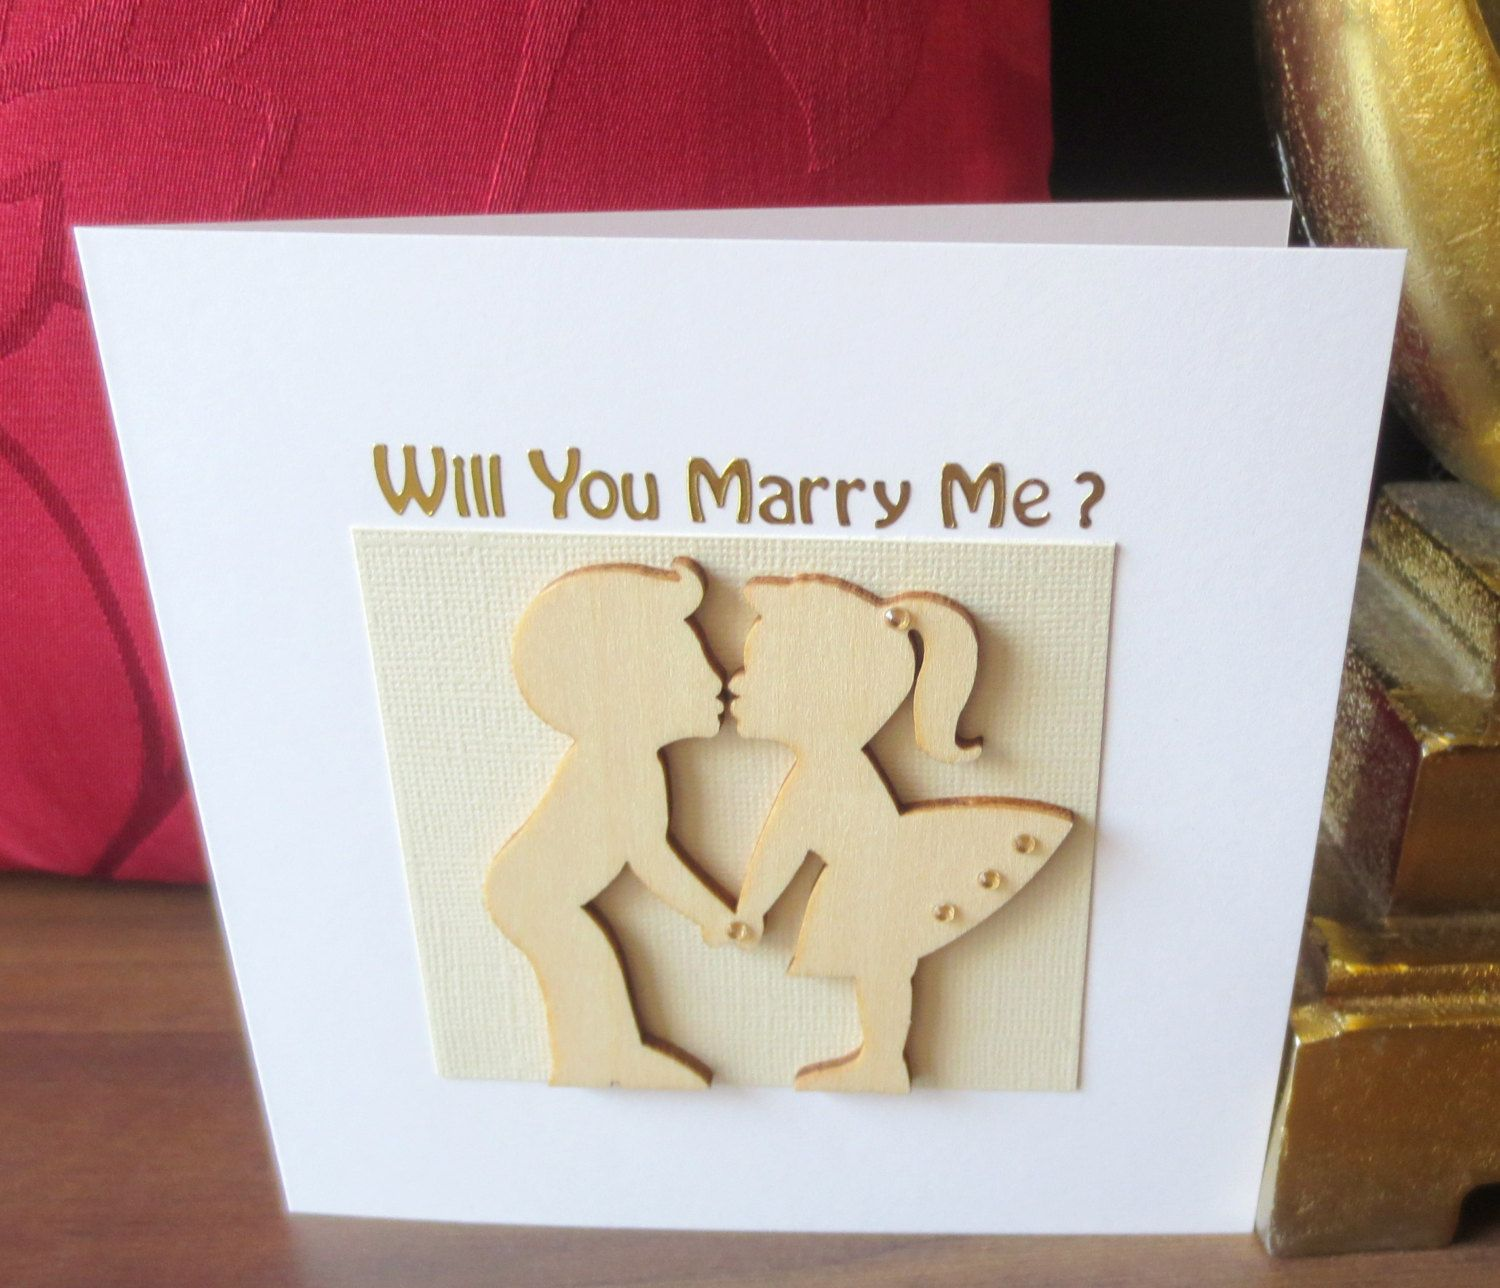 Engagement card proposal card will you marry me card marry me engagement card proposal card will you marry me card marry me card marriage proposal wife to be love card couple cards proposal kristyandbryce Choice Image